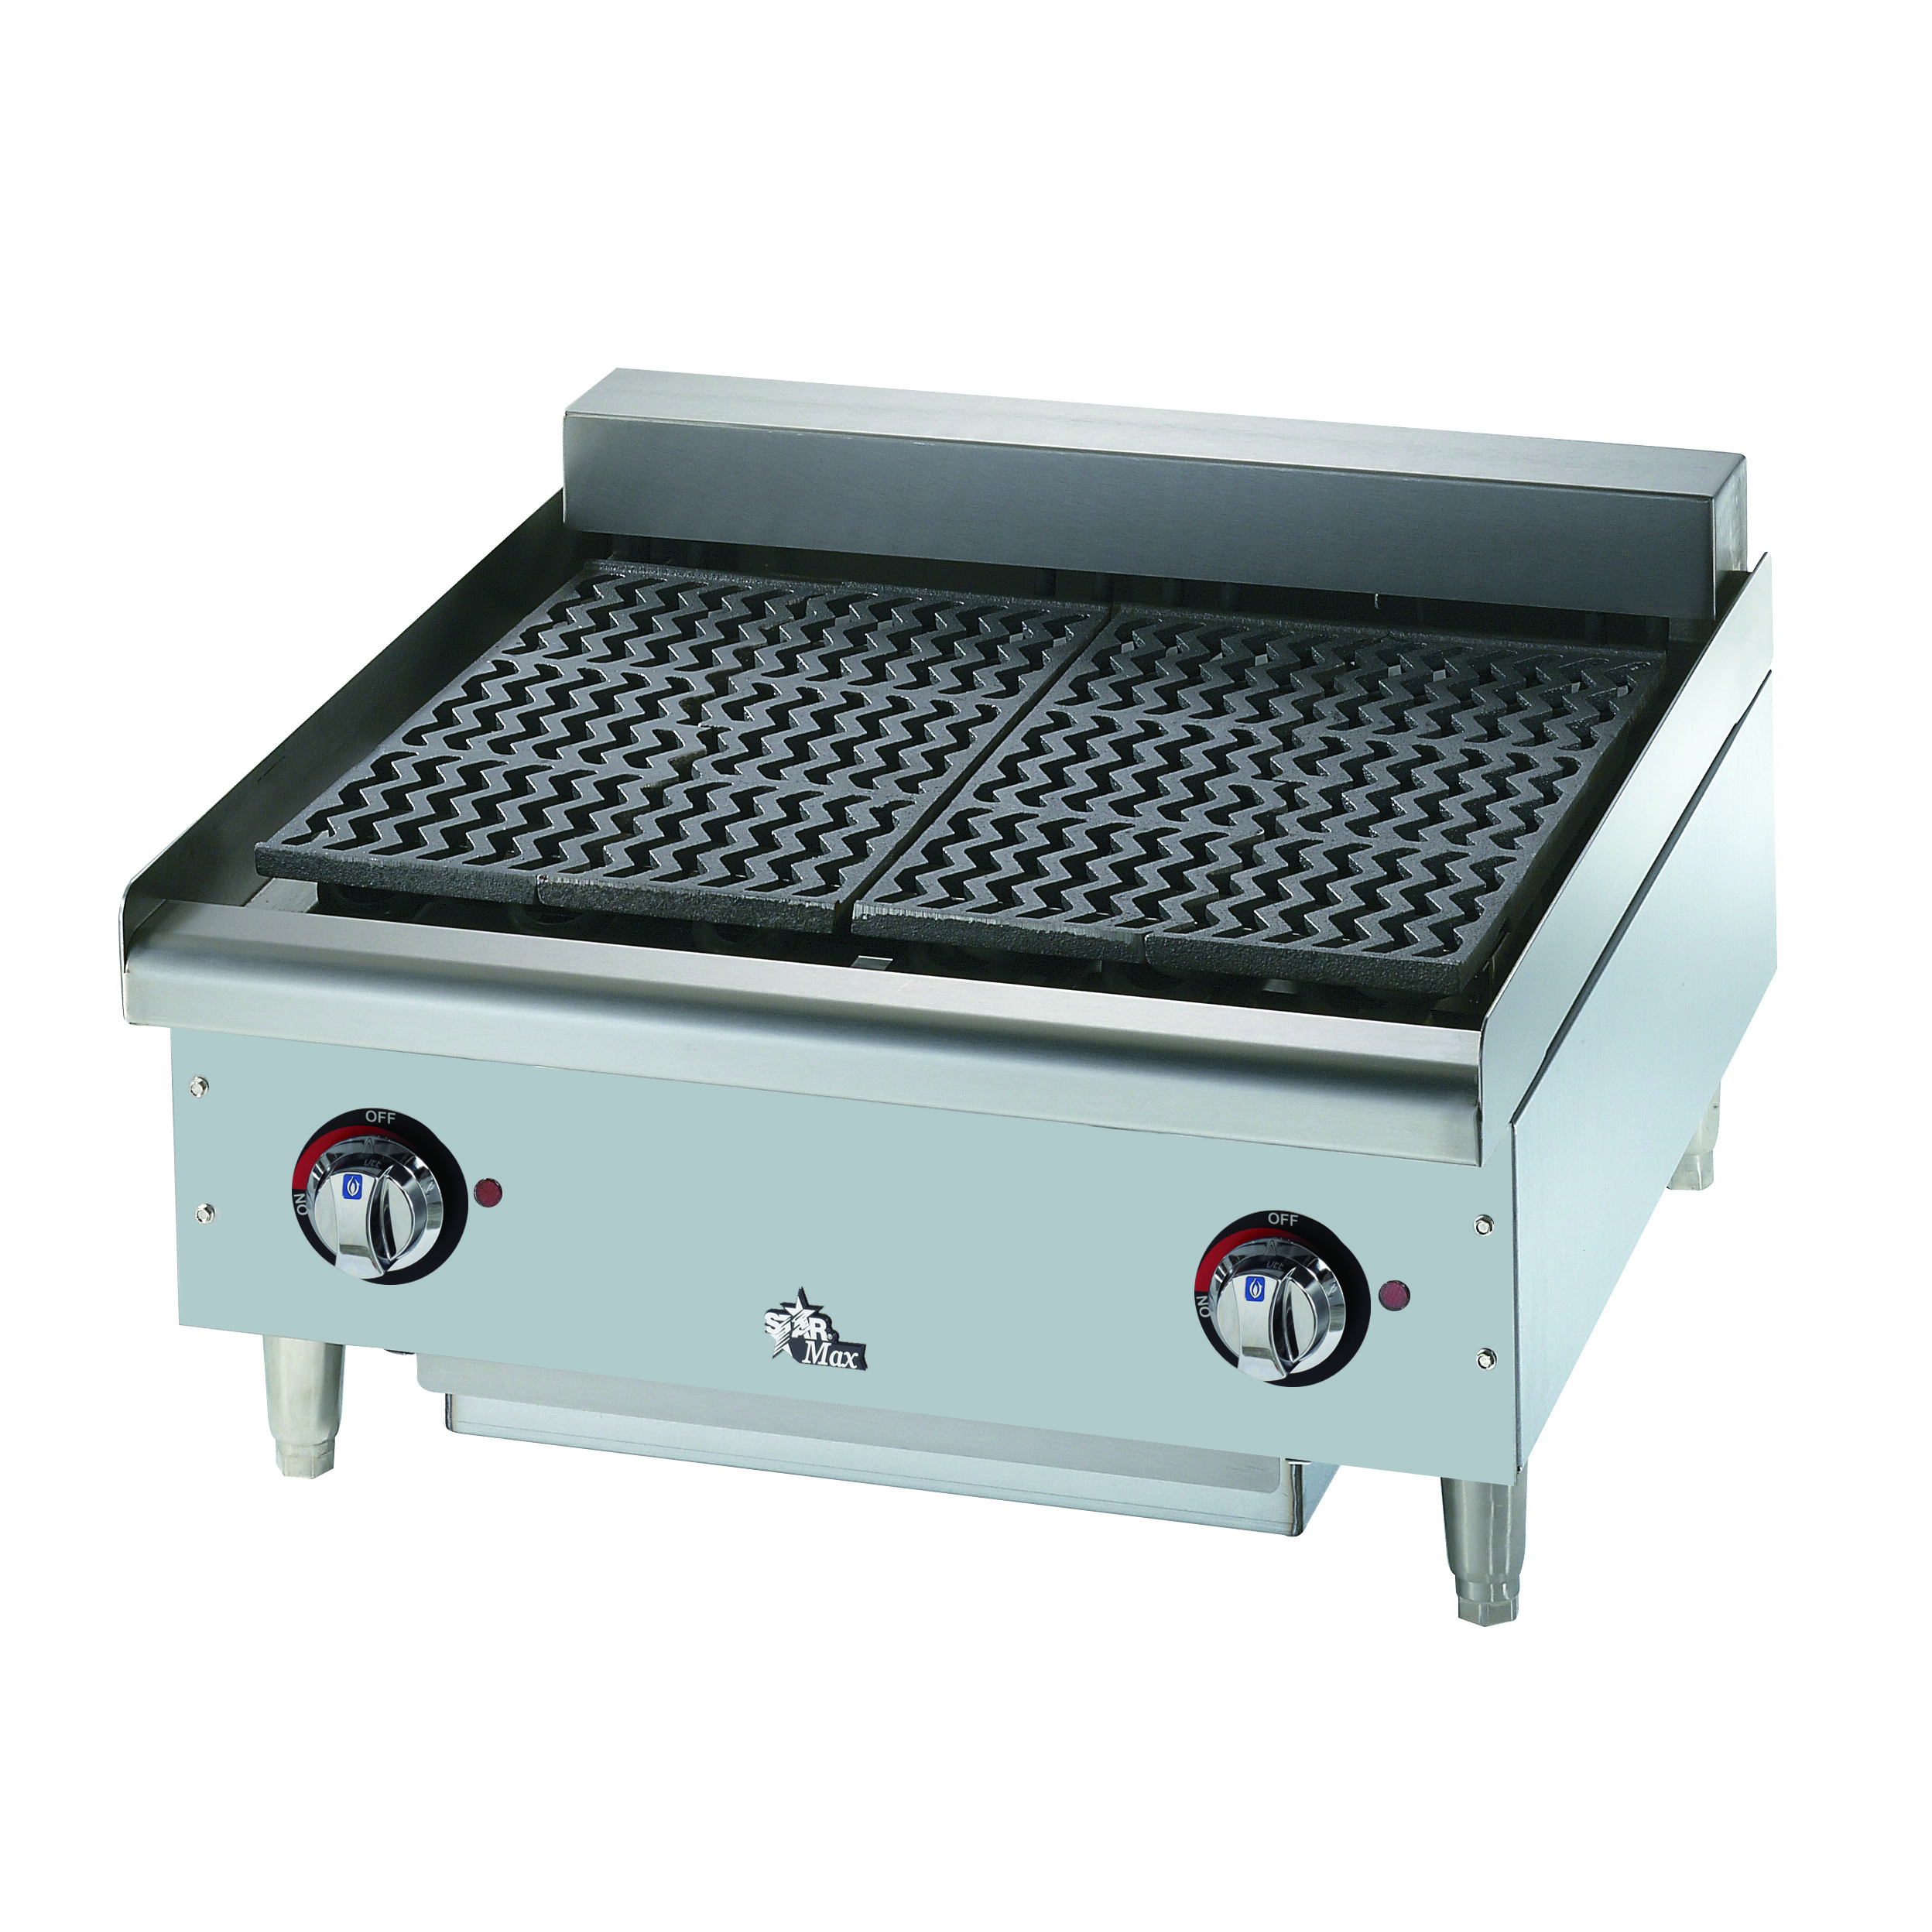 Star 5124CF charbroiler, electric, countertop